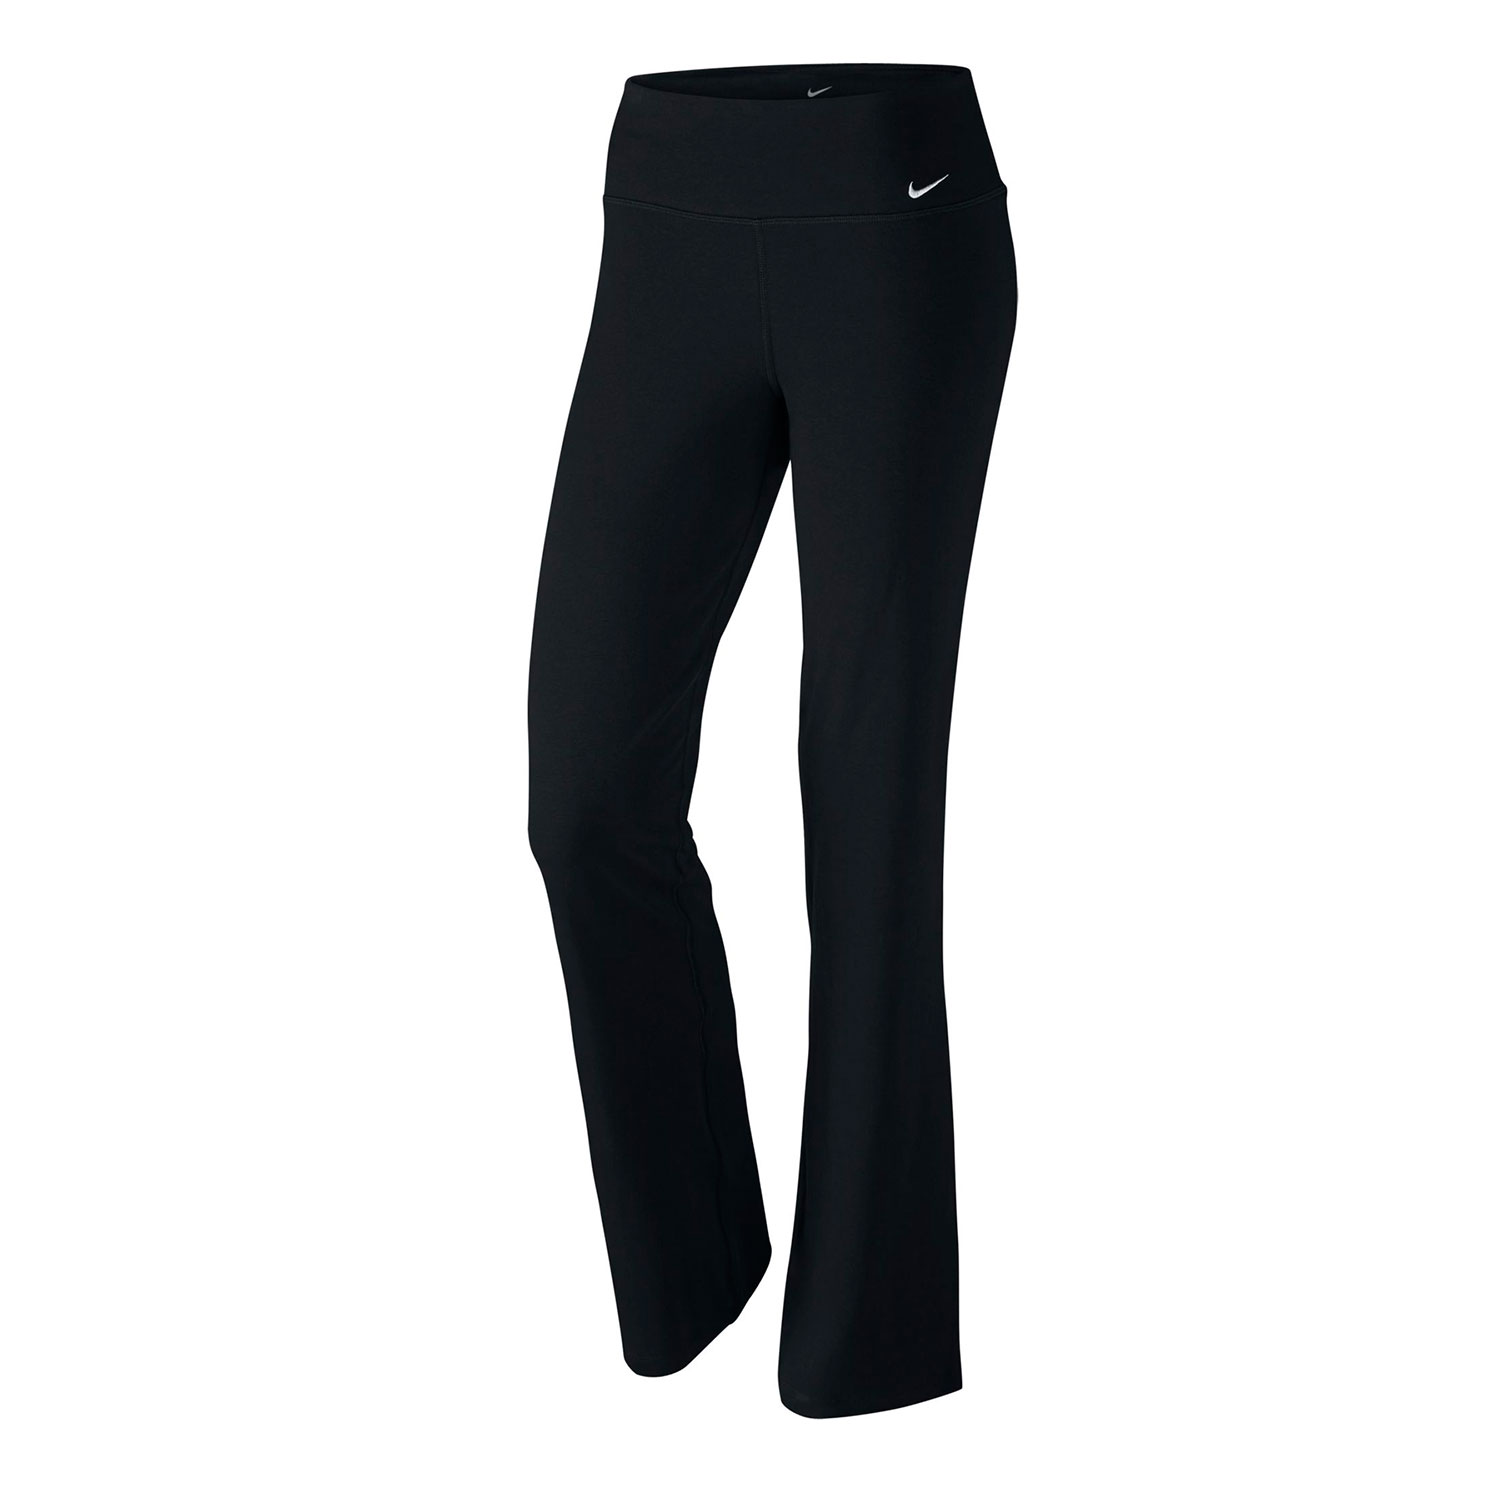 Excellent  Pants And Shorts Athletic Pants And Shorts Women S Regular Dri Fit